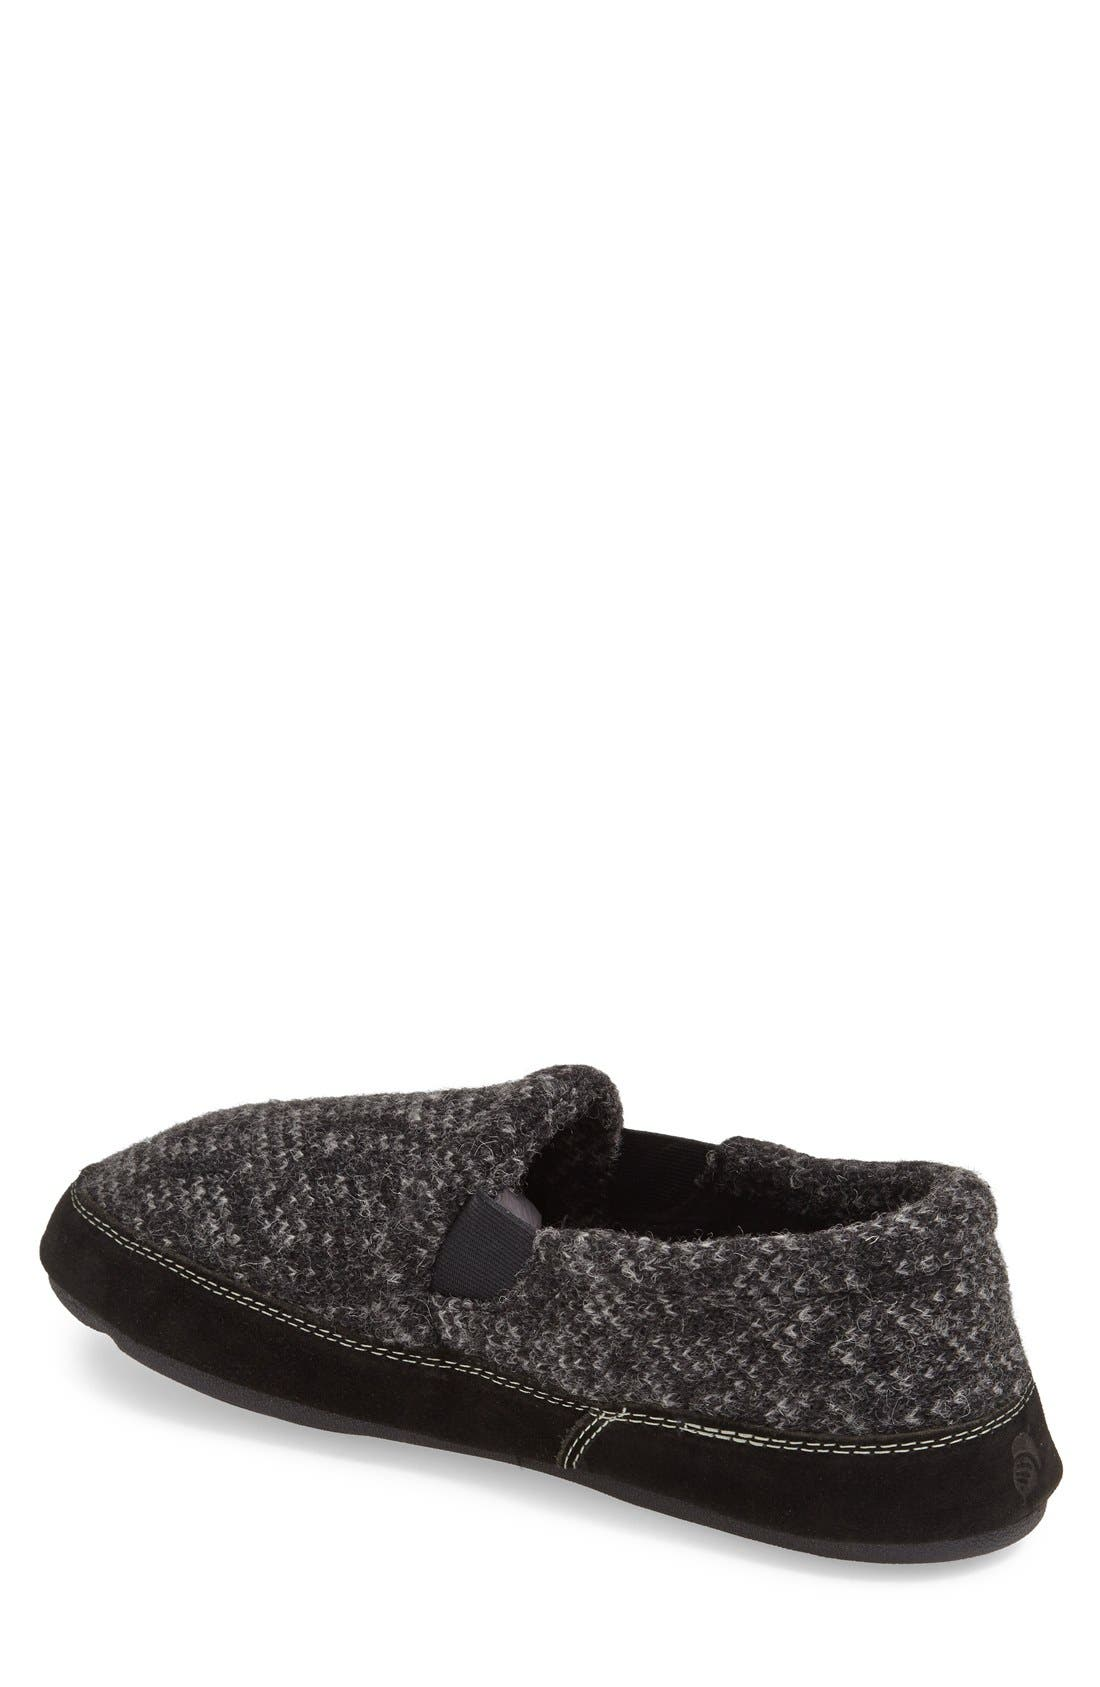 'Fave' Slipper,                             Alternate thumbnail 2, color,                             CHARCOAL TWEED